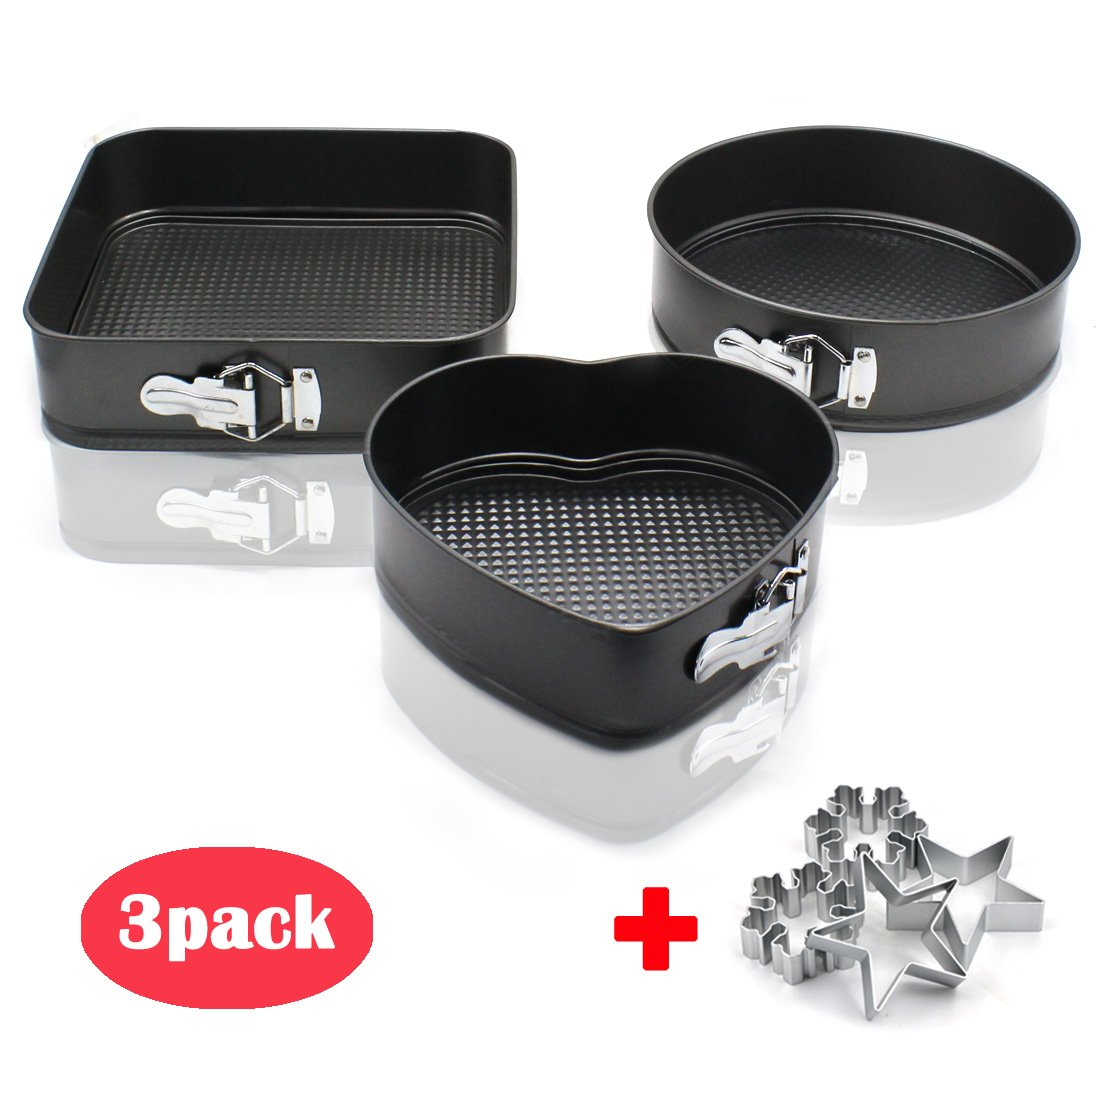 Nonstick Springform Cake Pan 3 pieces Nonstick Metal Cake Bakeware Set with 10 inch Square 9 inch Round 8 inch Heart Shaped & 4 Aluminum funny biscuits mold for Birthday Party Kitchen